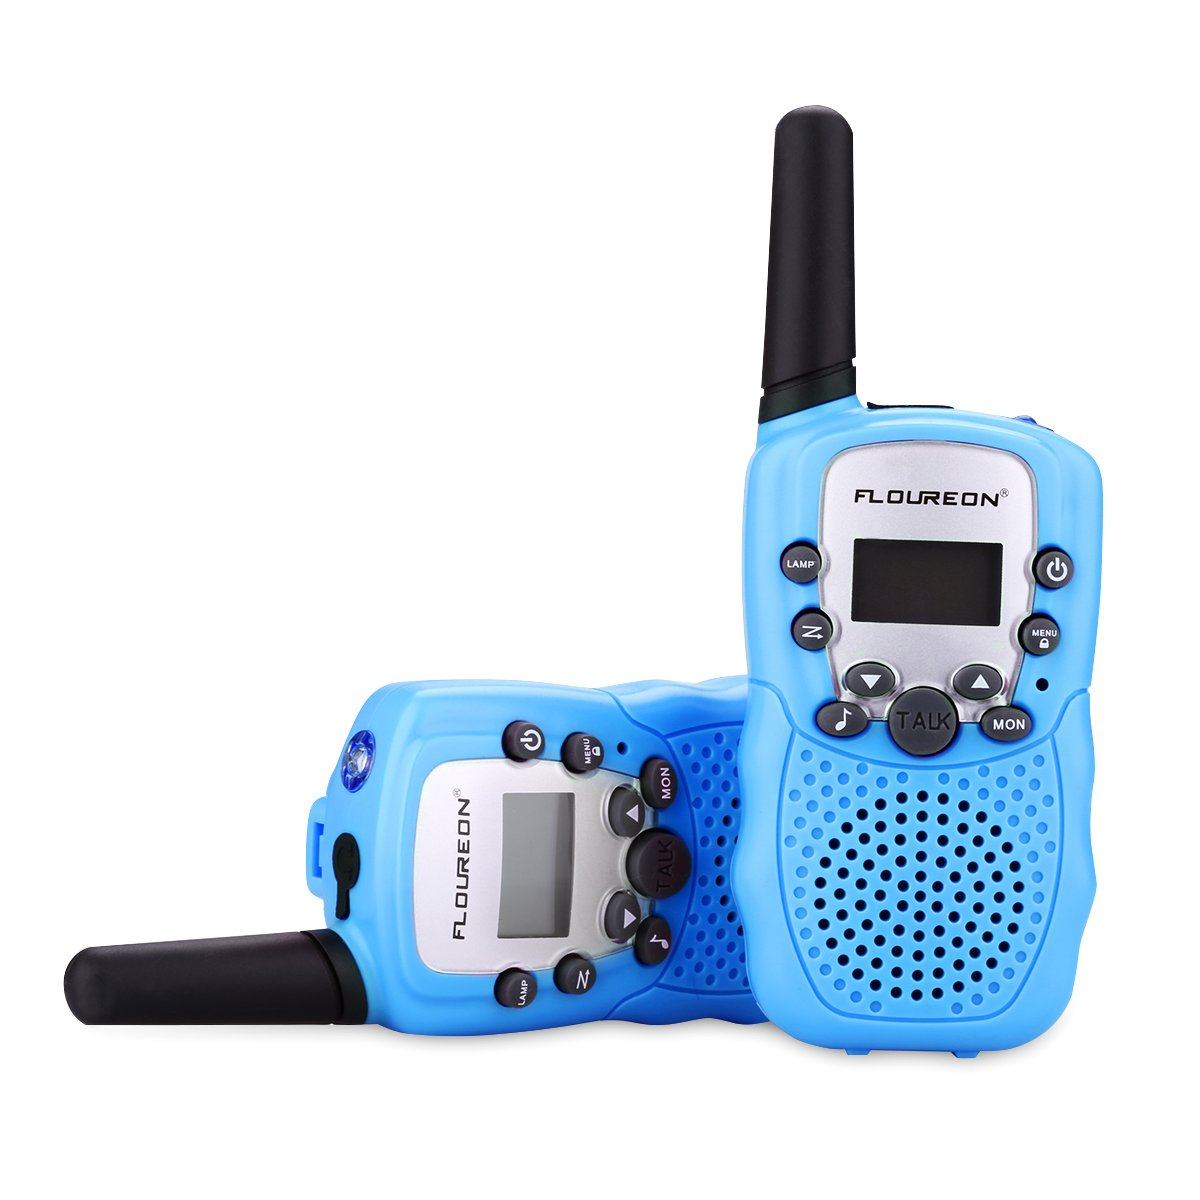 FLOUREON Kids Toy Walkie Talkies Two Way Radios Walky Talky 22 Channel Long  Range UHF Handheld Outdoor Kids Toy Cellphone for Children